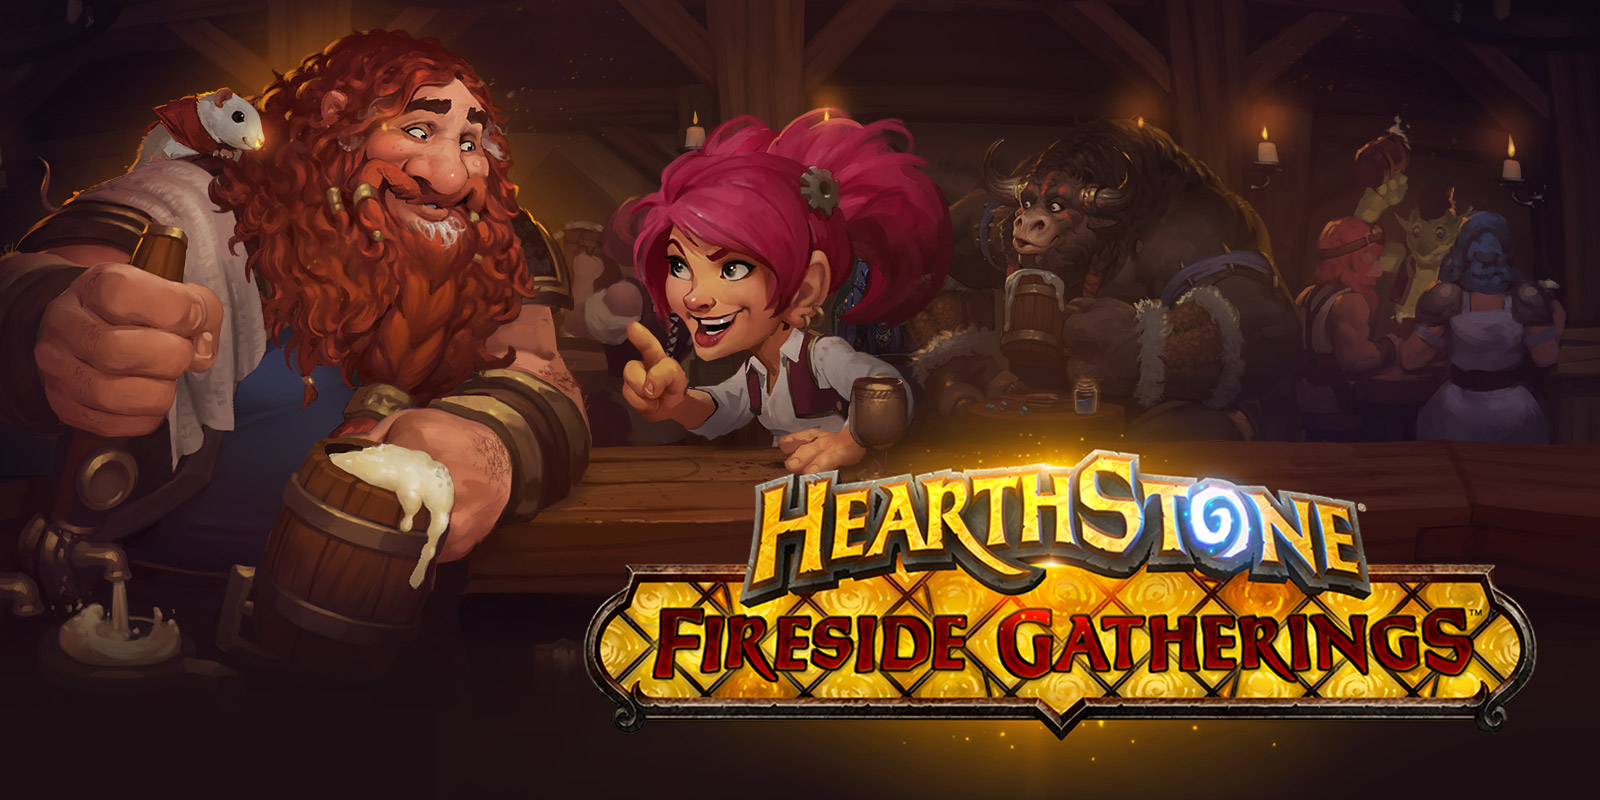 What's New for Fireside Gatherings 2019! — Hearthstone